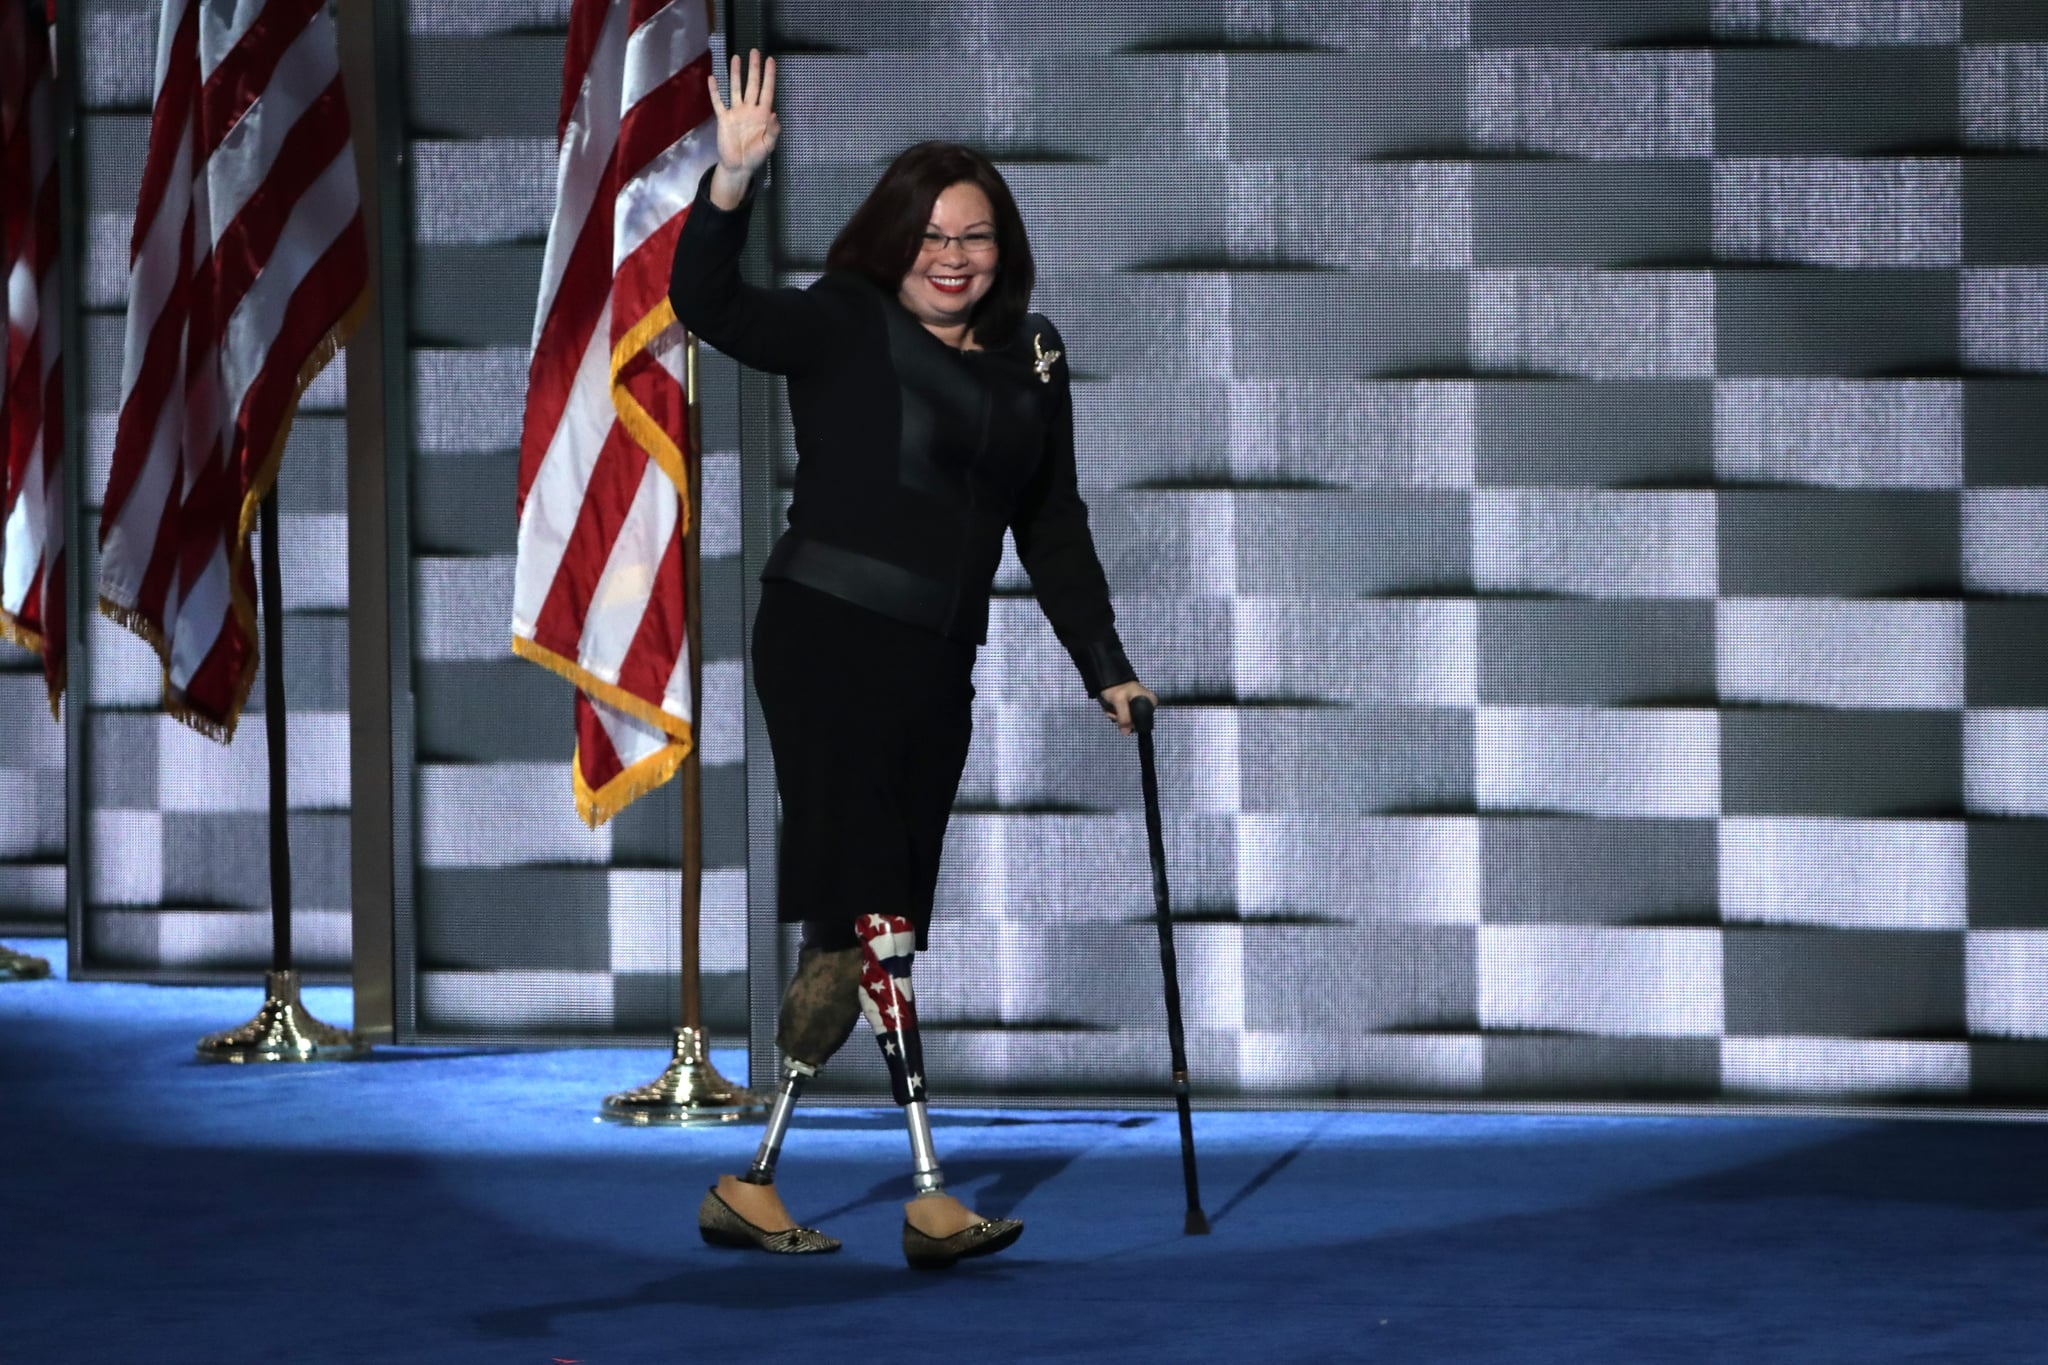 Tammy Duckworth Wins Illinois Senate Race Popsugar News